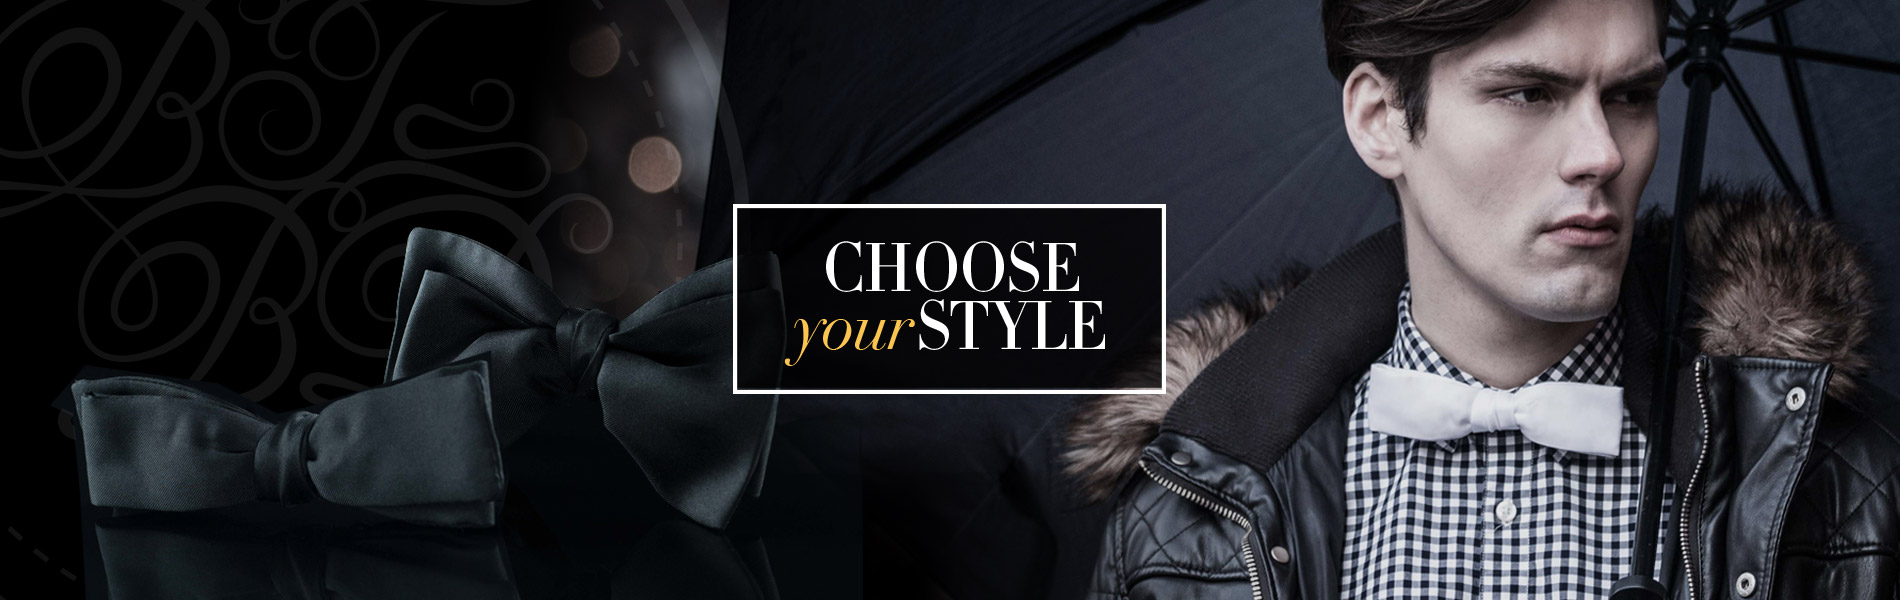 Choose-Your-Style